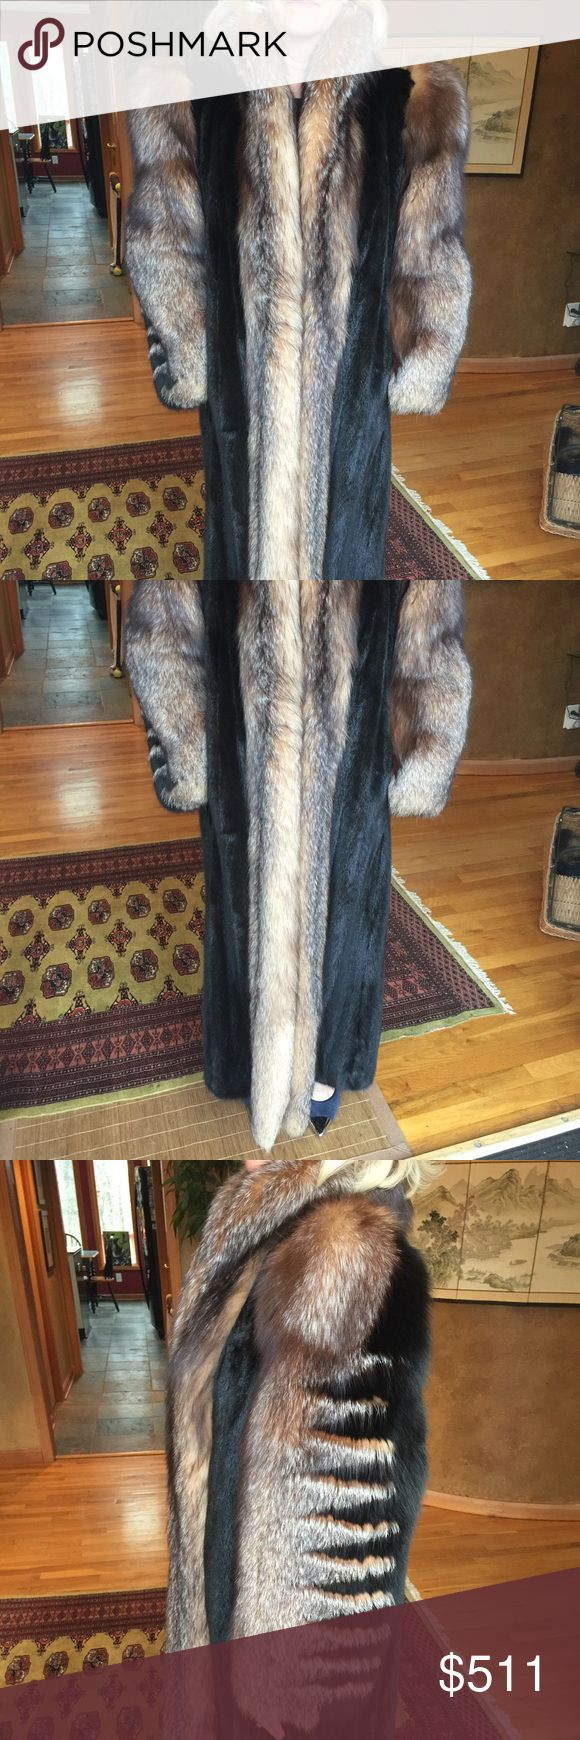 Full length fox/mink coat Szor-Diener full length fox and mink coat. Size small.  Very dark brown mink. Side view shows zig zag pattern.  No odor, in great condition both lining and fur. Szor-Diener Jackets & Coats